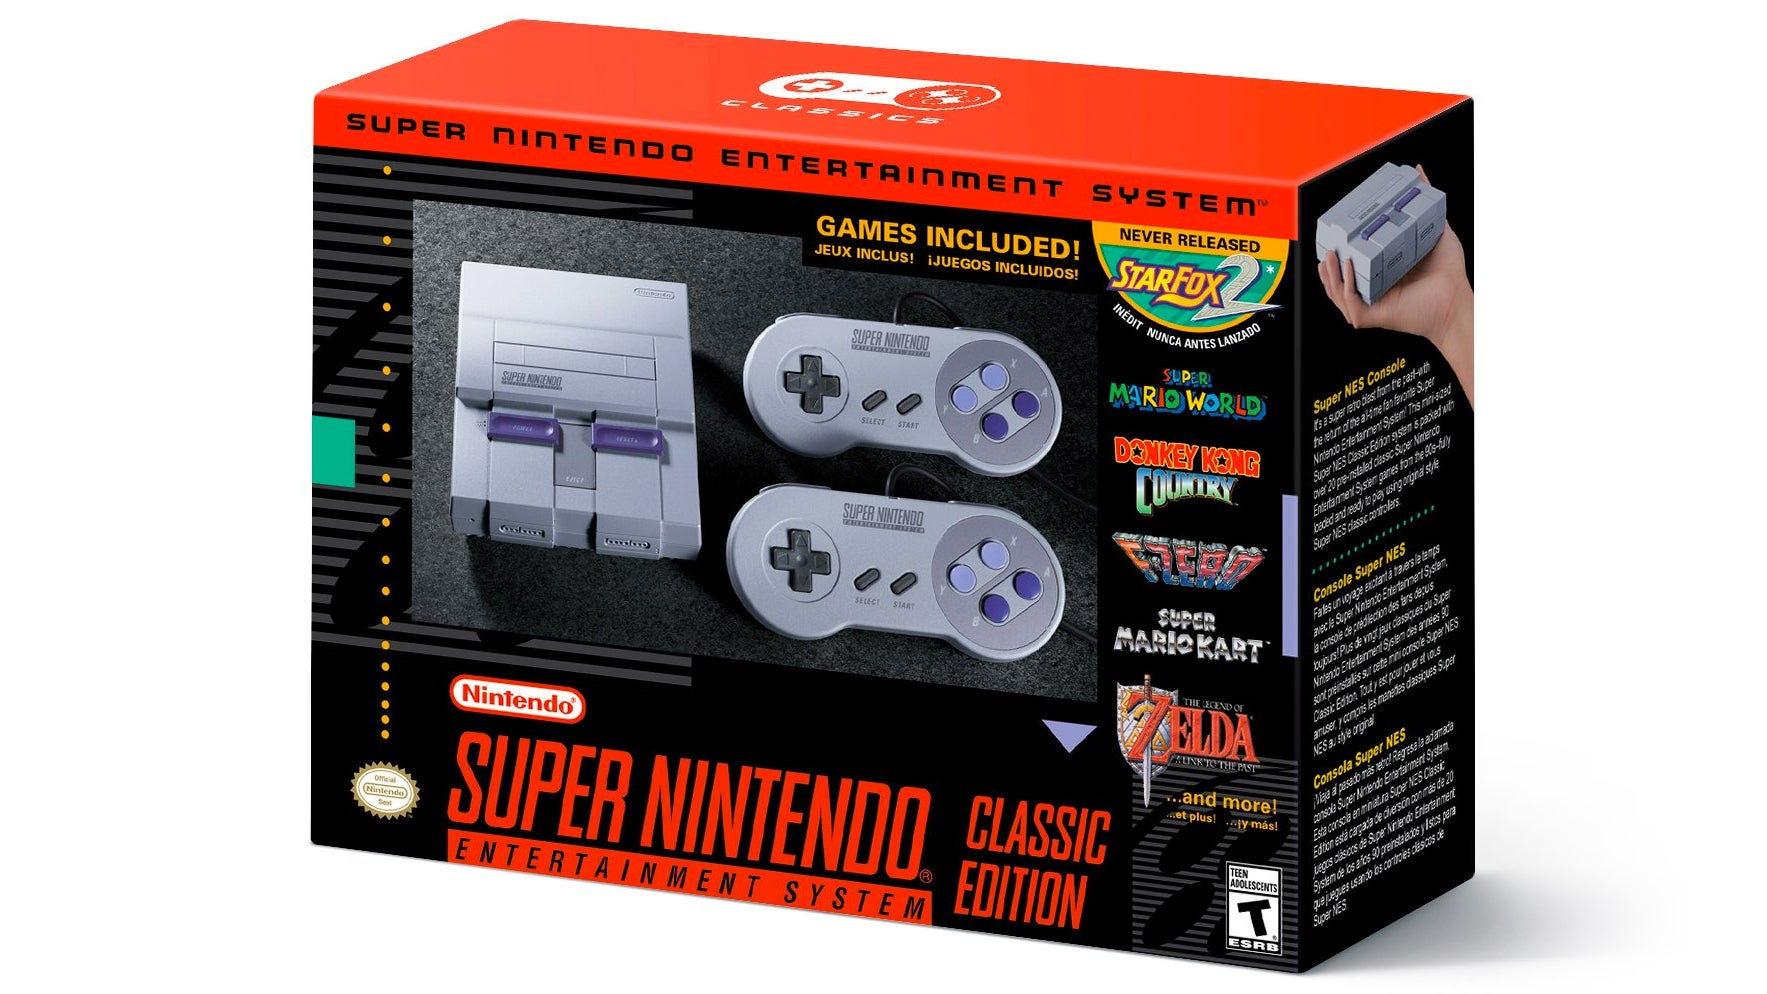 Expect more Super NES Classic units than with NES Mini